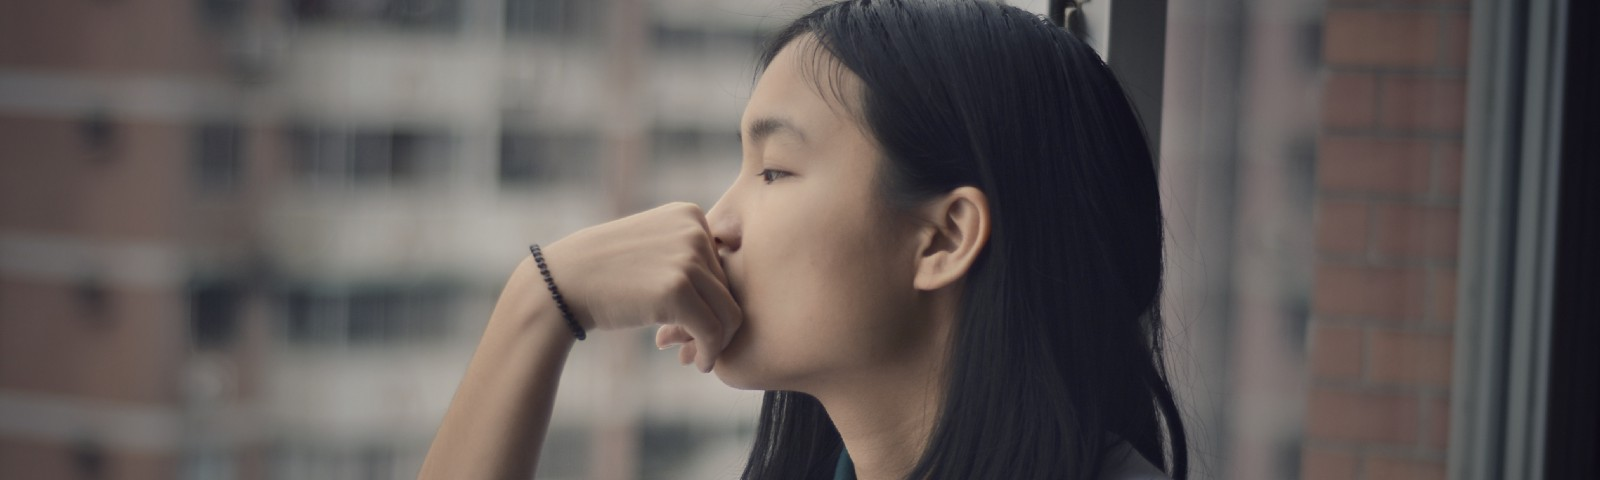 A young woman leans on a railing, with her hand next to her face, as she looks out the window in deep thought.